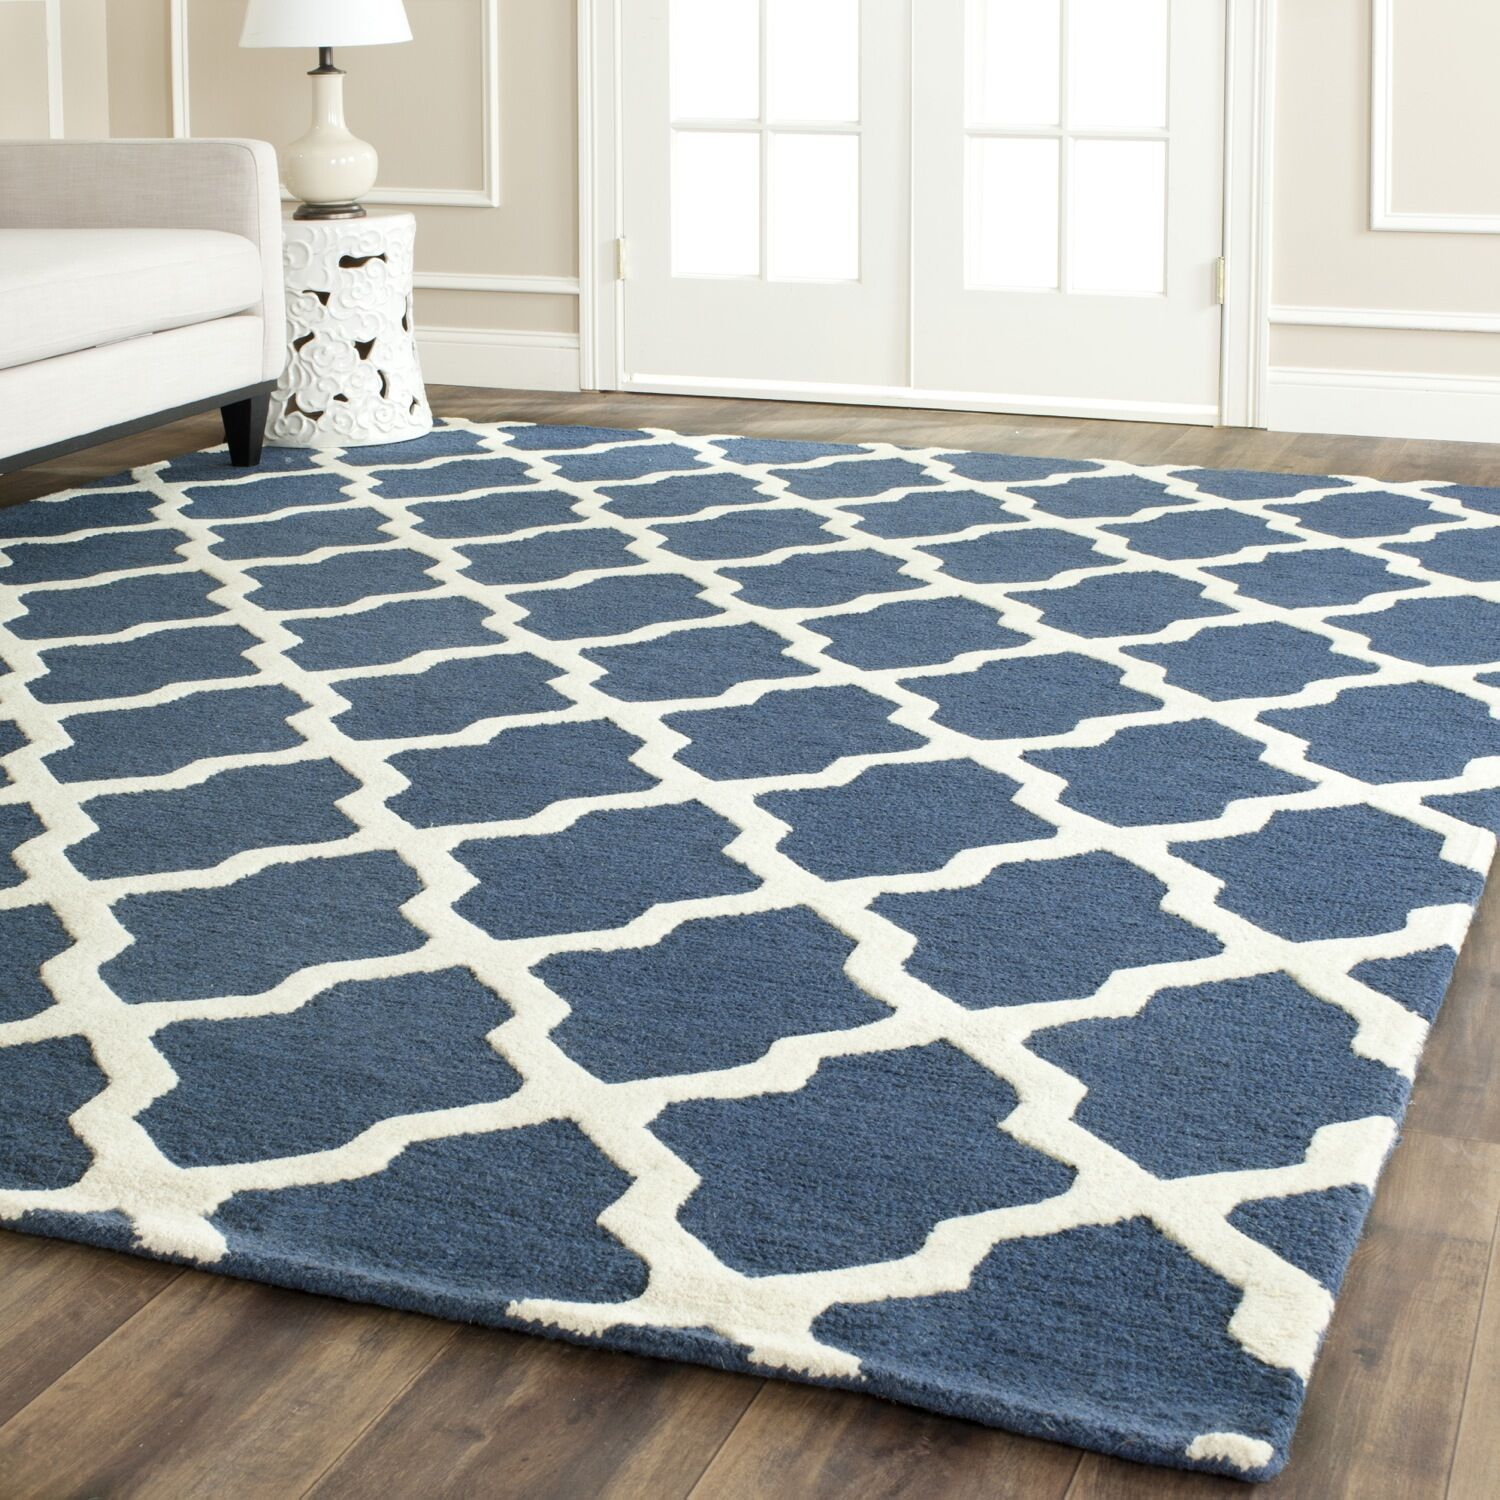 Charlenne Lattice Handand-Tufted Wool Navy Blue Area Rug Rug Size: Rectangle 11'6